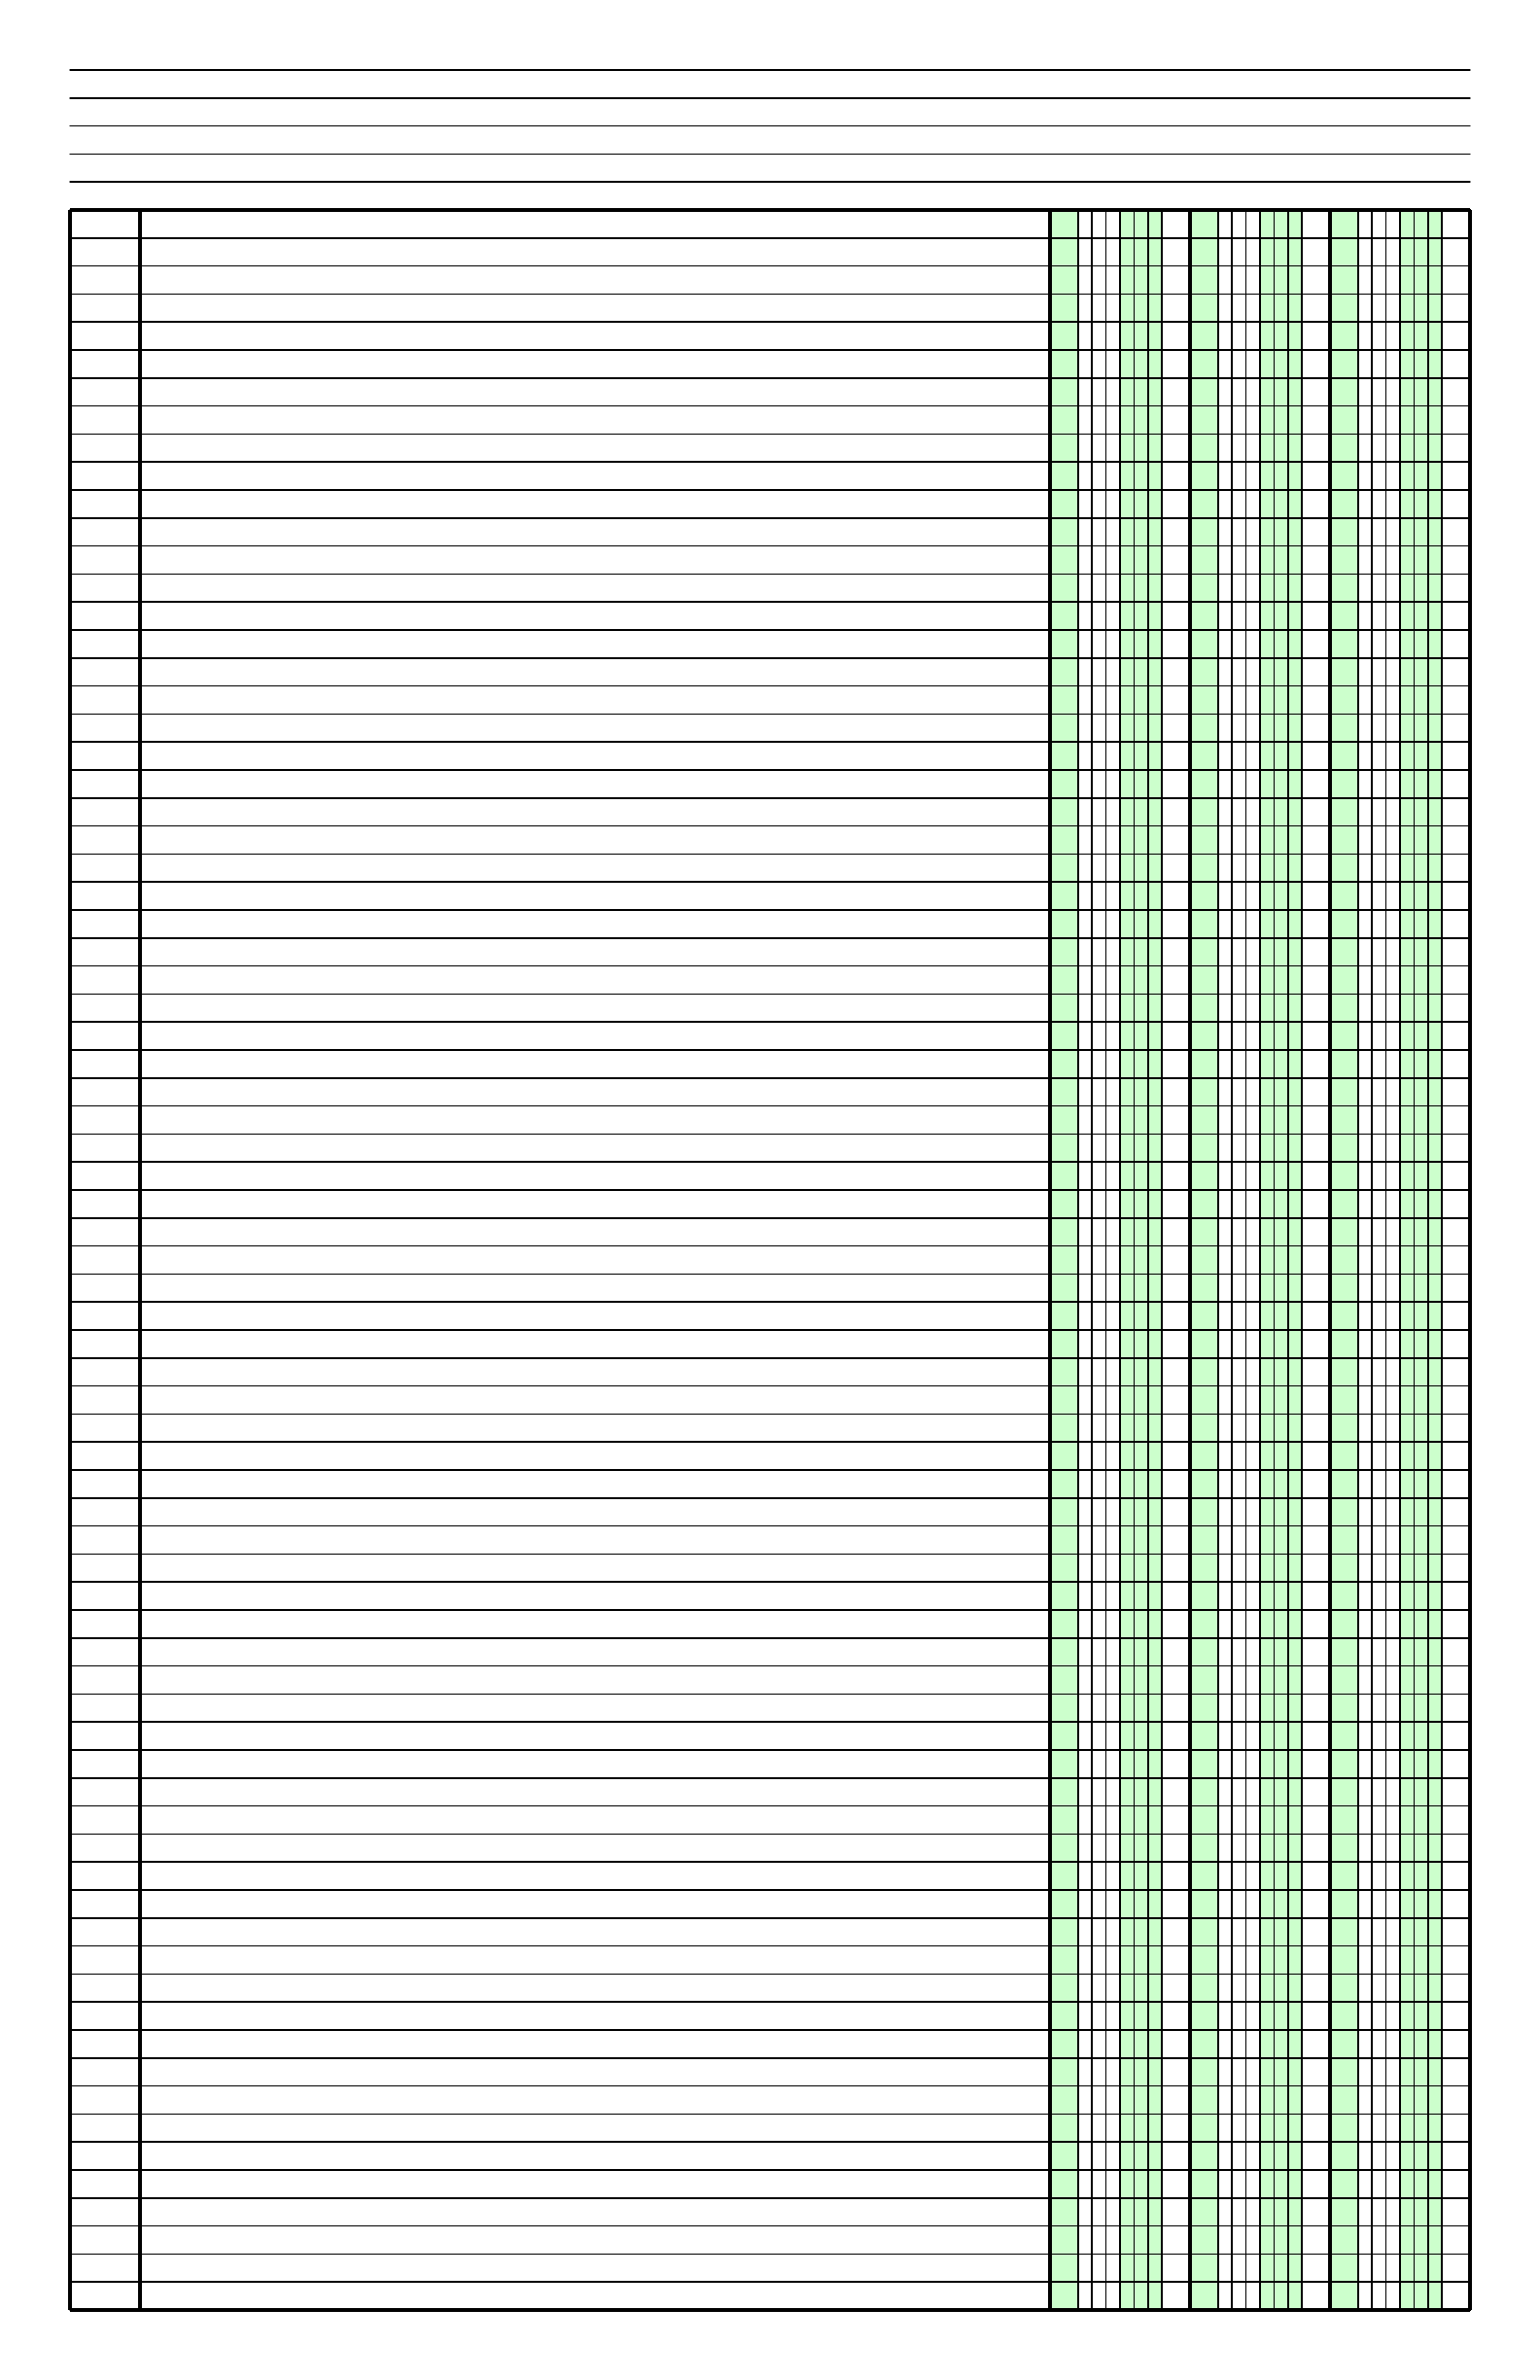 Columnar Paper with Three Columns on LedgerSized Paper in Portrait Orientation Free Download